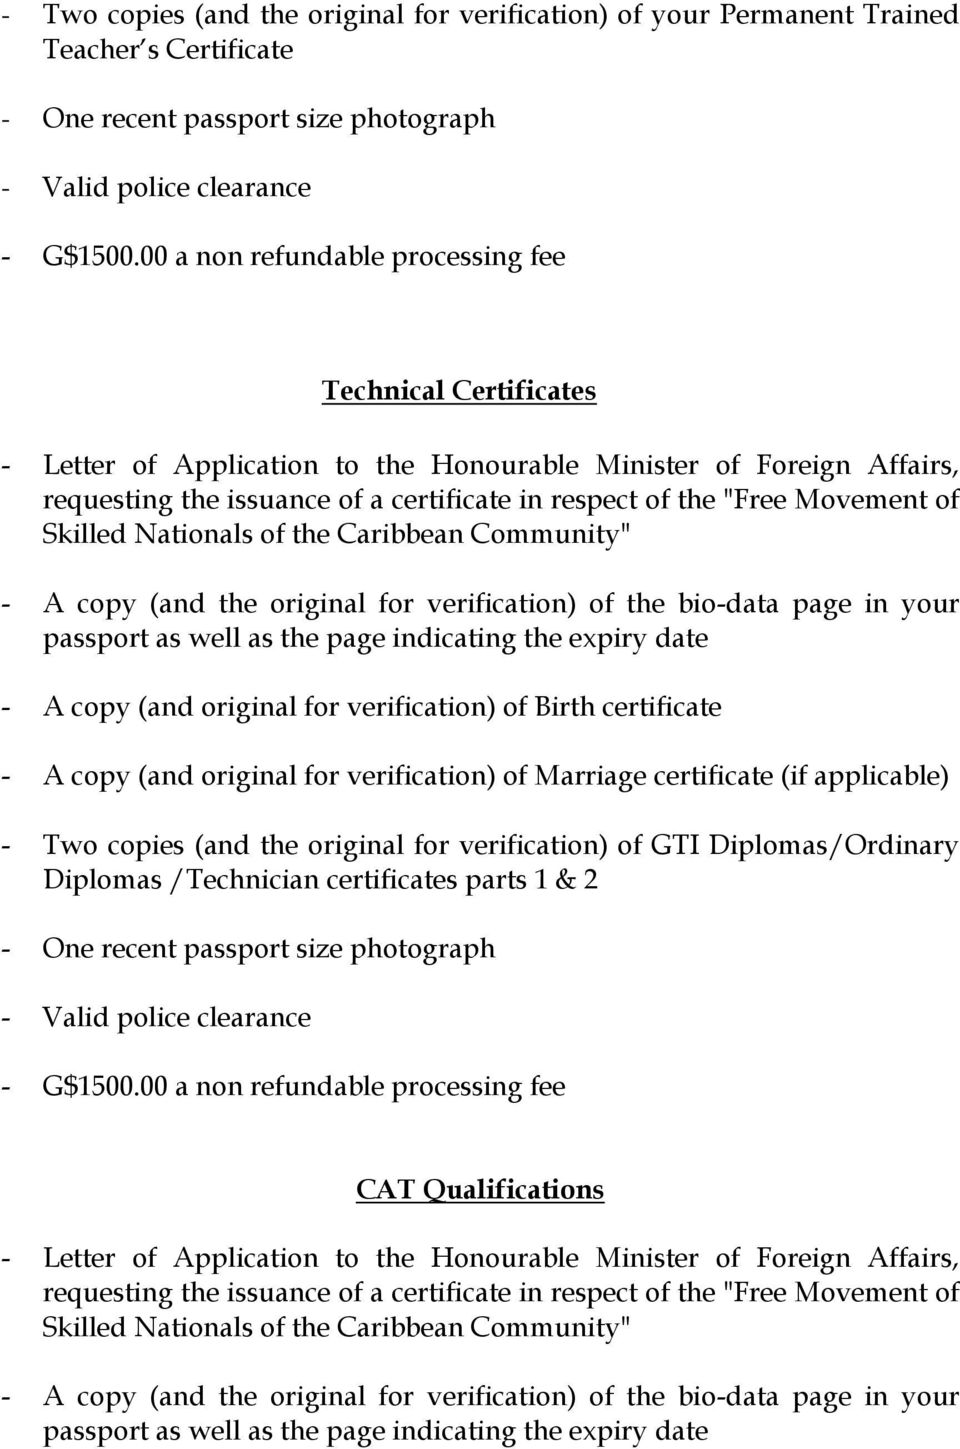 Two copies (and the original for verification) of GTI Diplomas/Ordinary Diplomas /Technician certificates parts 1 & 2 CAT Qualifications requesting the issuance of a certificate in respect